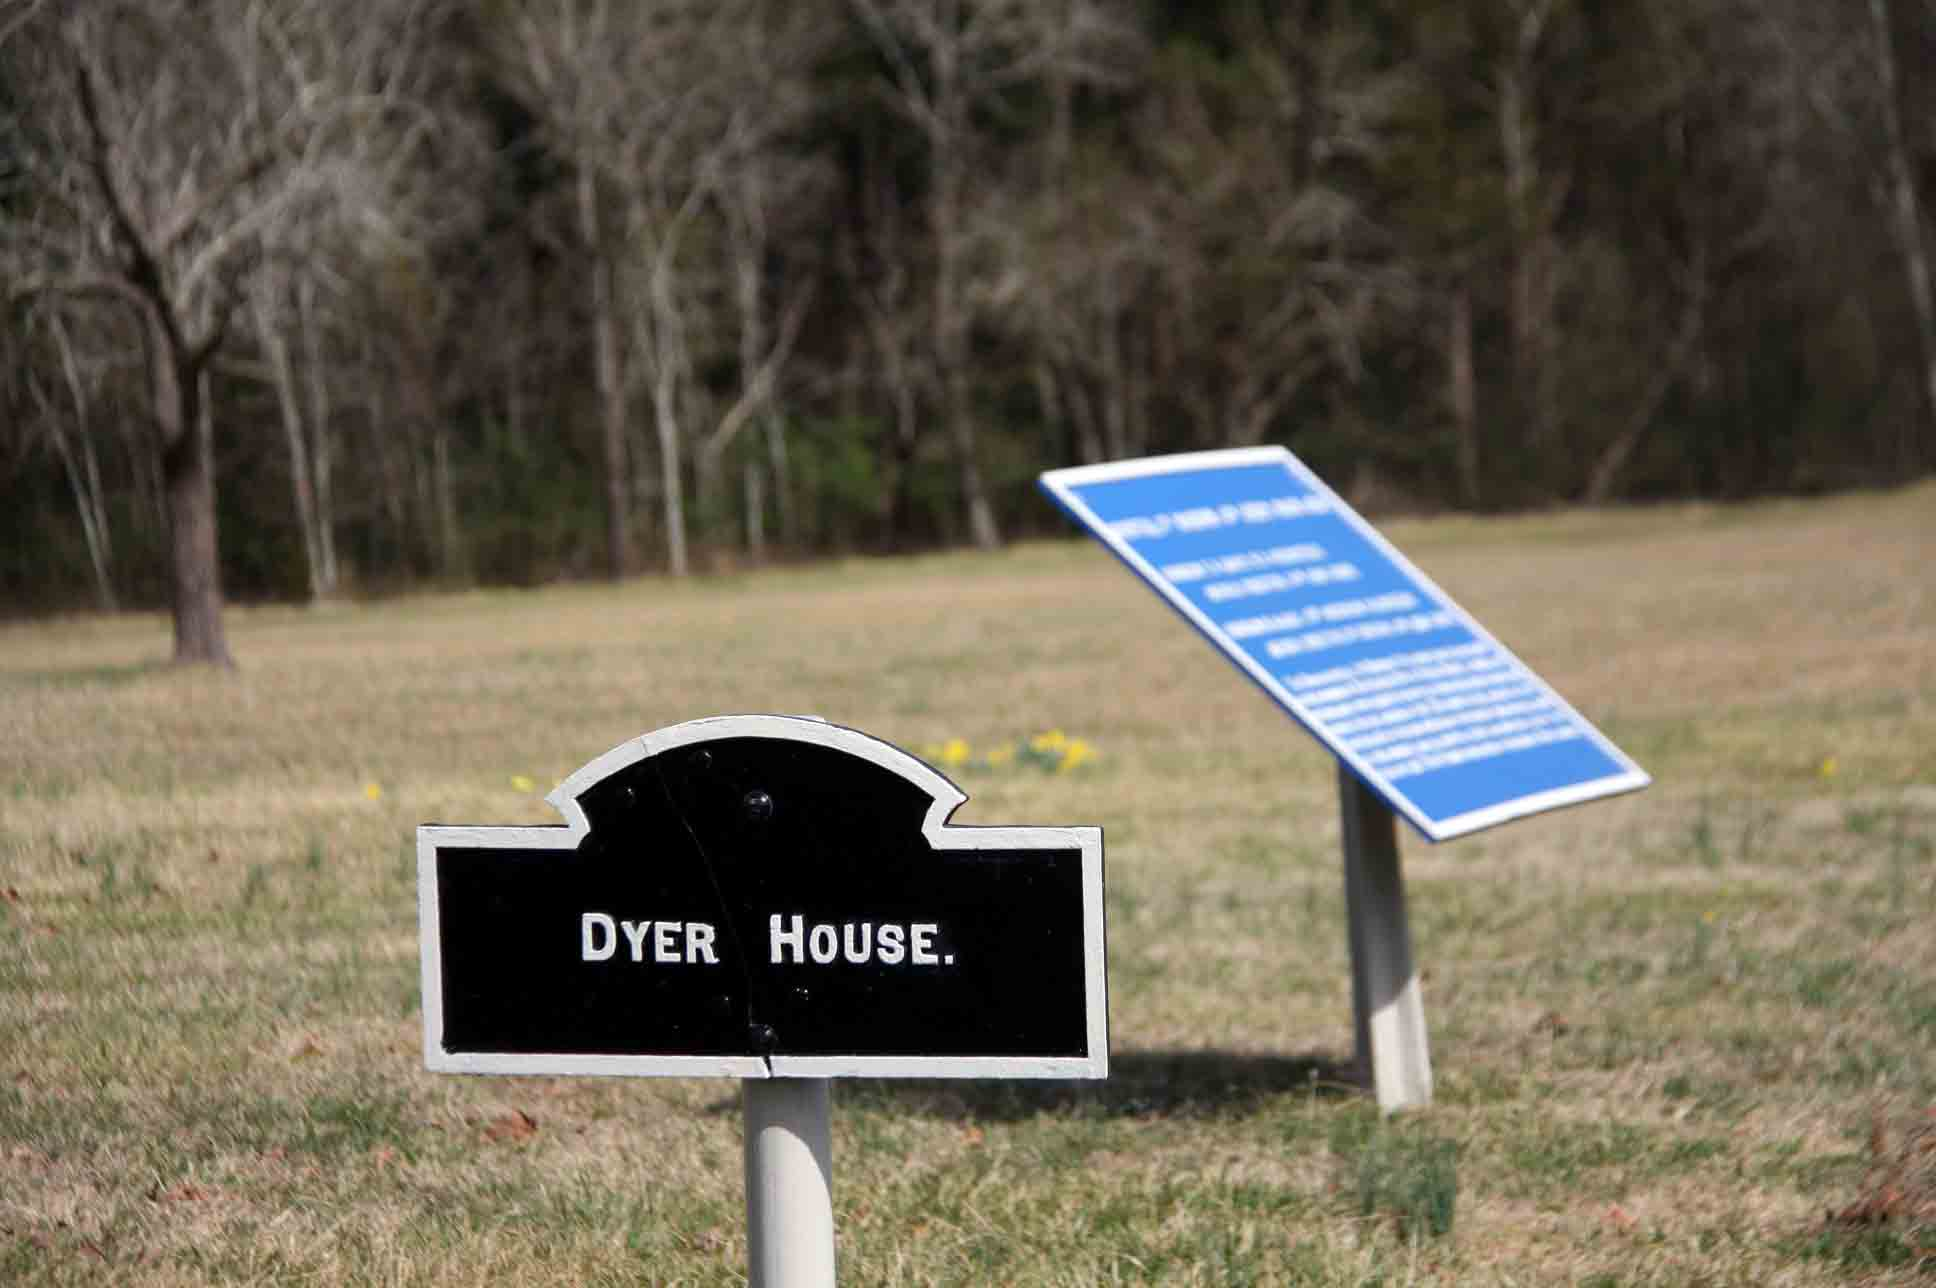 Dyer House Sign, click photo to enlarge.